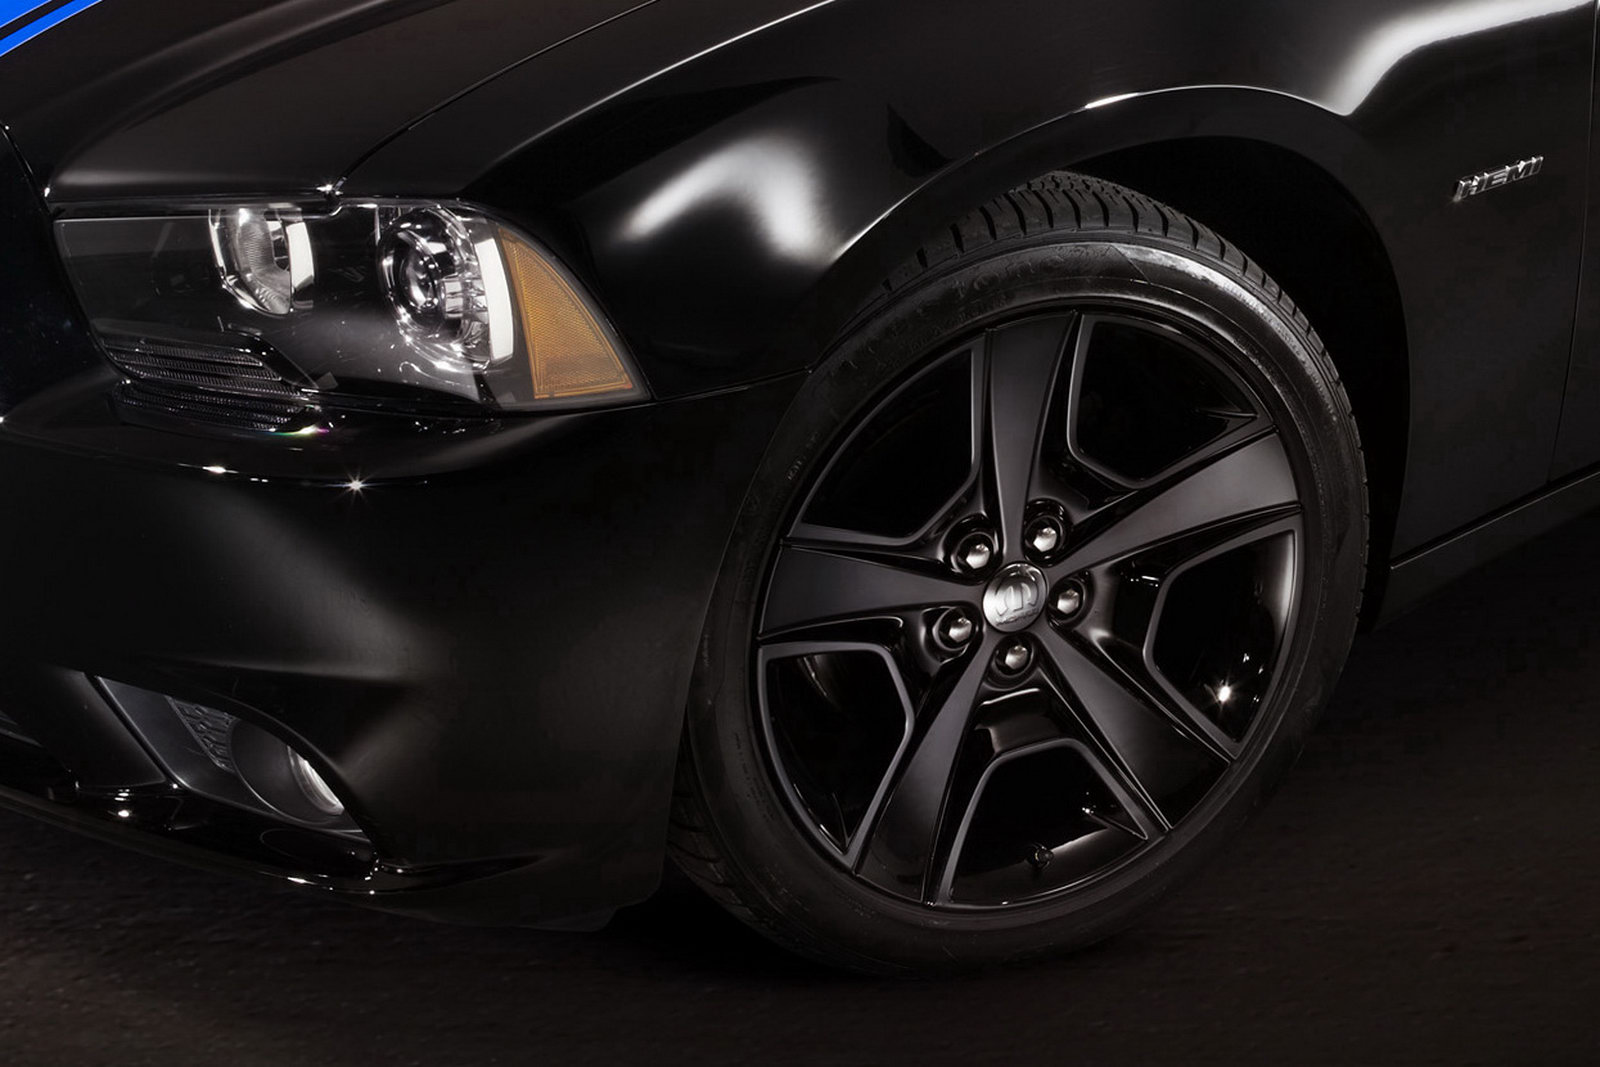 Mopar 11 Charger 3 Mopar '11 Charger Edition with Excellent Operating Systems